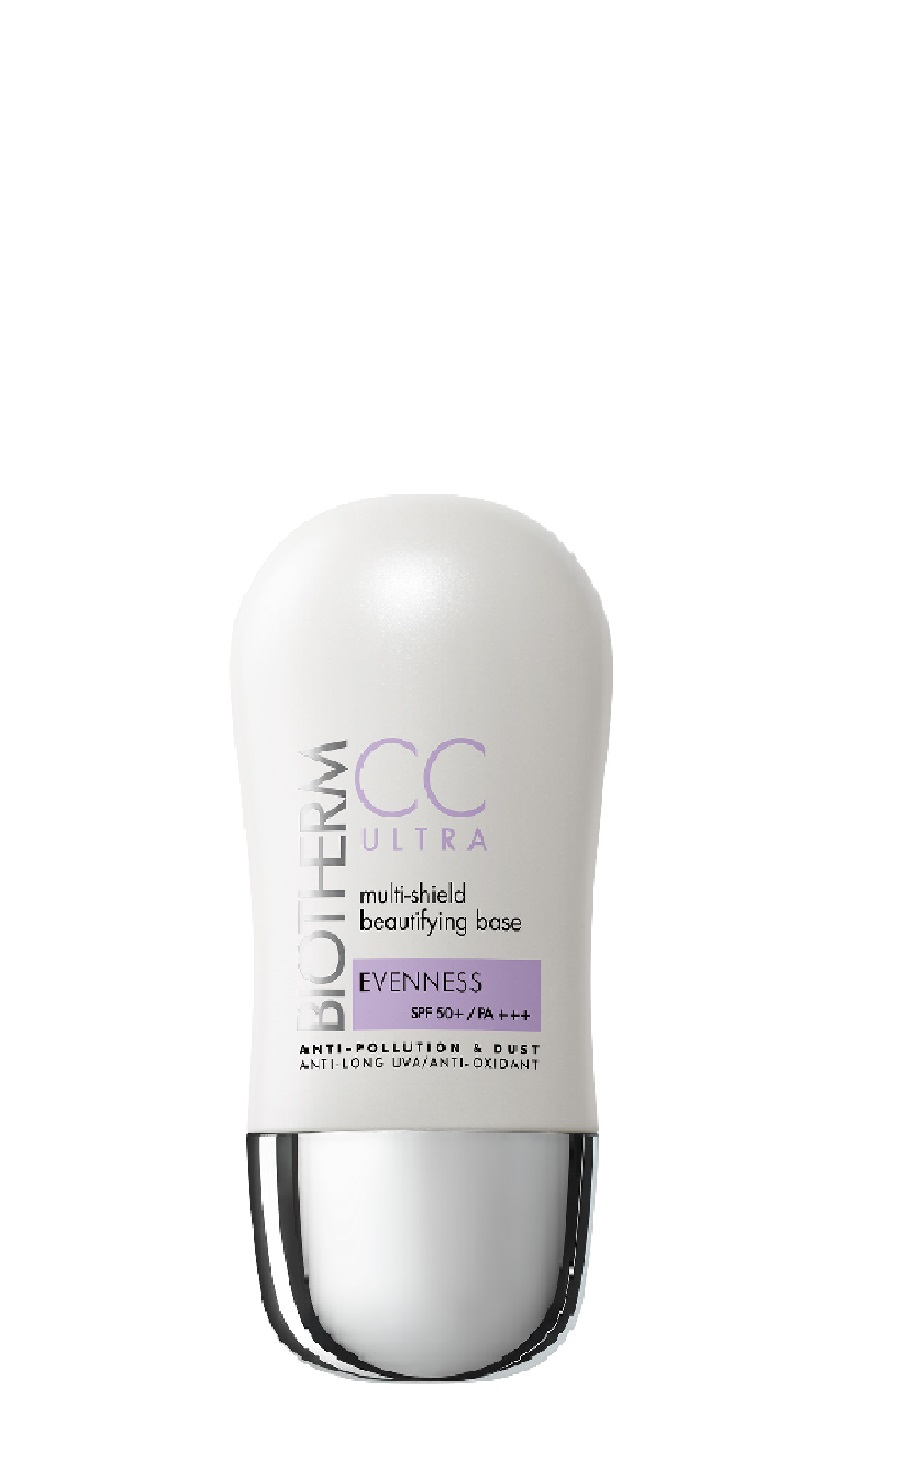 CC ULTRA CC CREAM EVENNESS